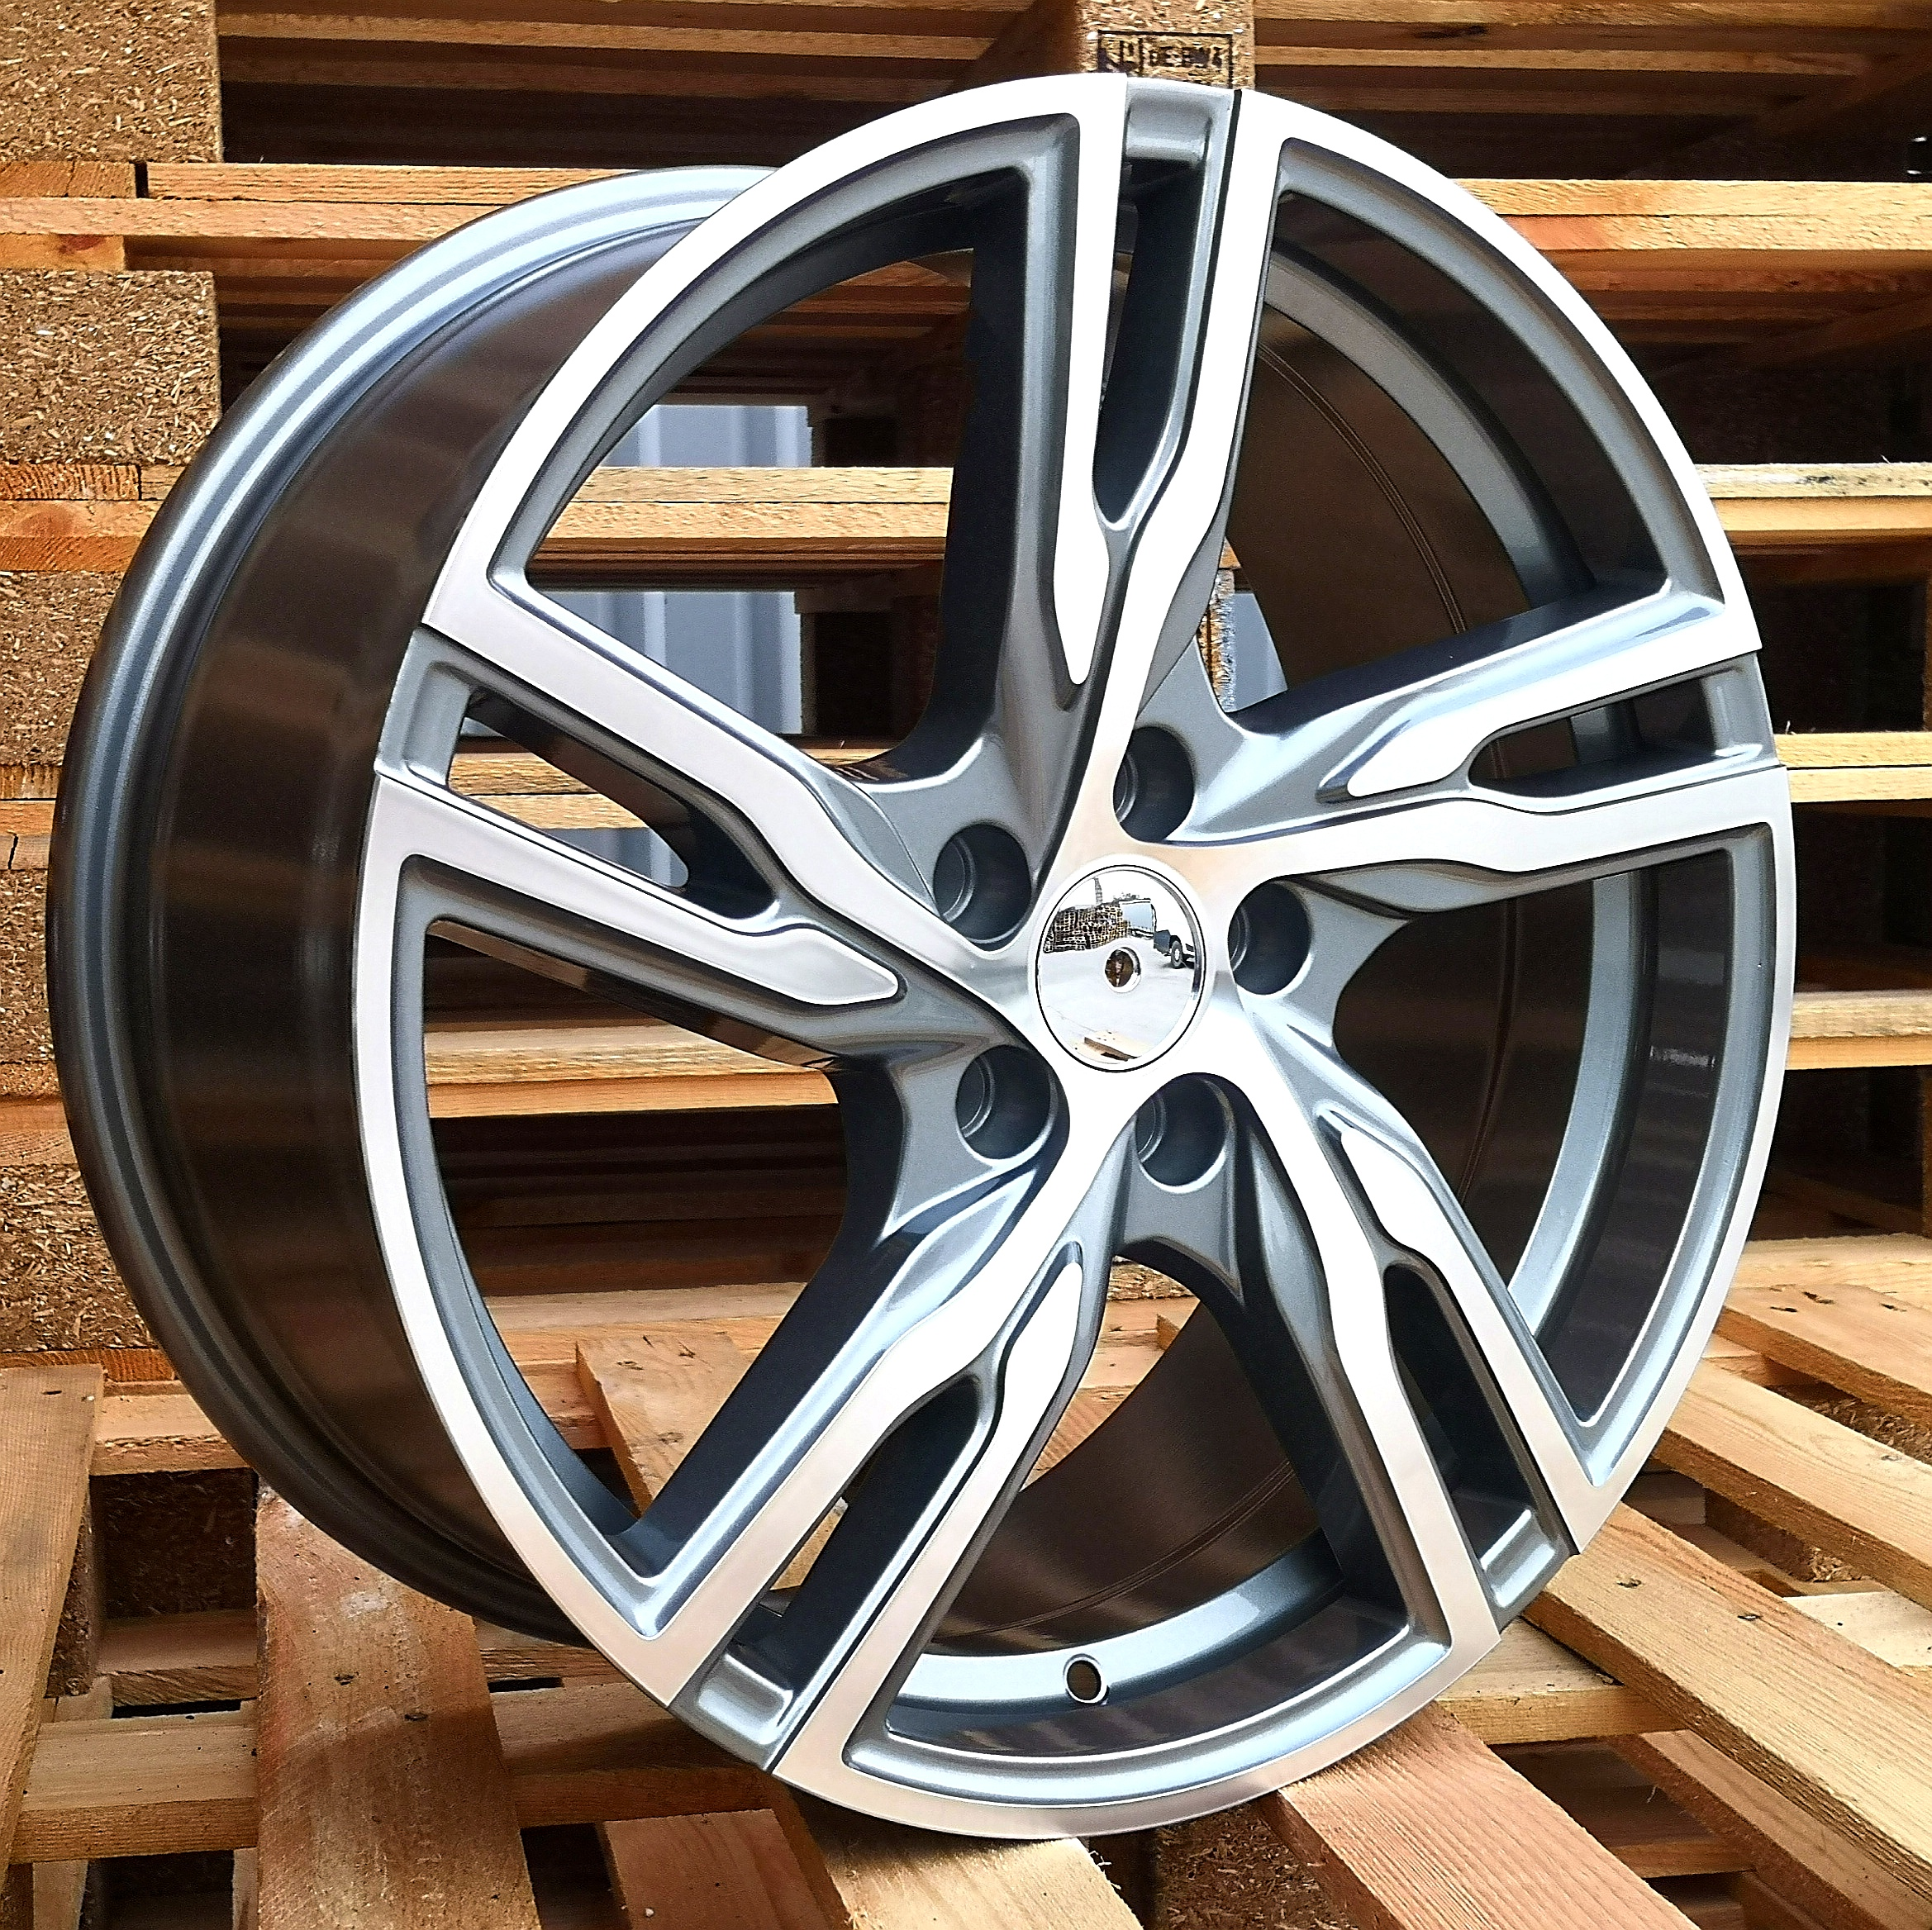 V18X8 5X108 ET42 63.3 FE161 (BK5399) MG+Powder Coating RWR VOL (+3eur) (P)## 8x18 ET42 5x108